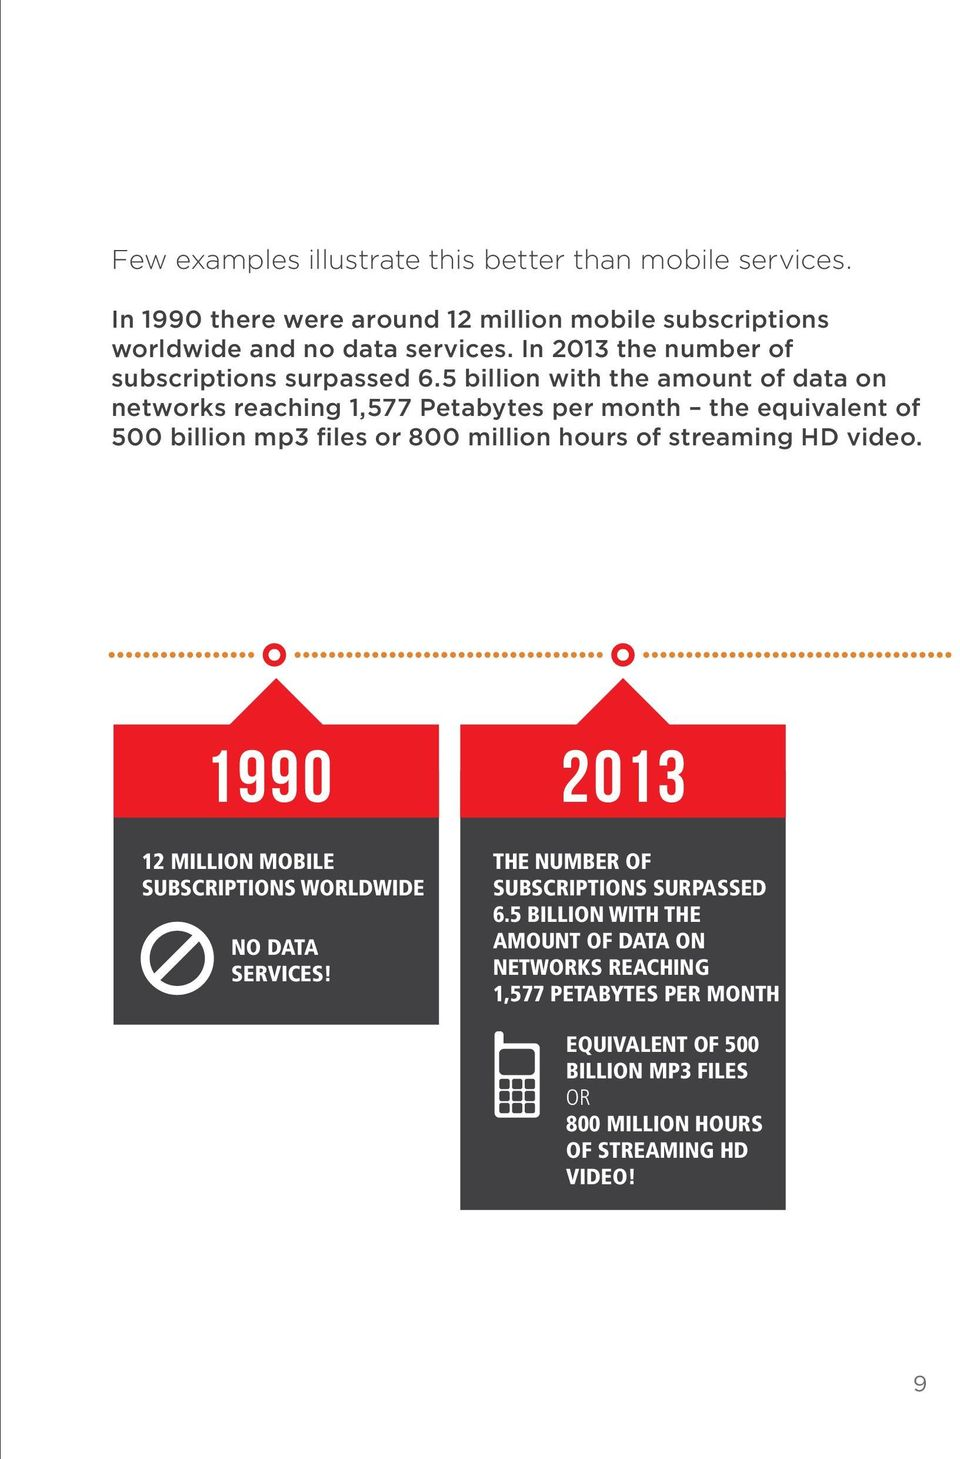 In 2013 the number of subscriptions the equivalent surpassed of 500 billion 6.5 mp3 billion files or 800 with million the hours amount of streaming of data HD video.